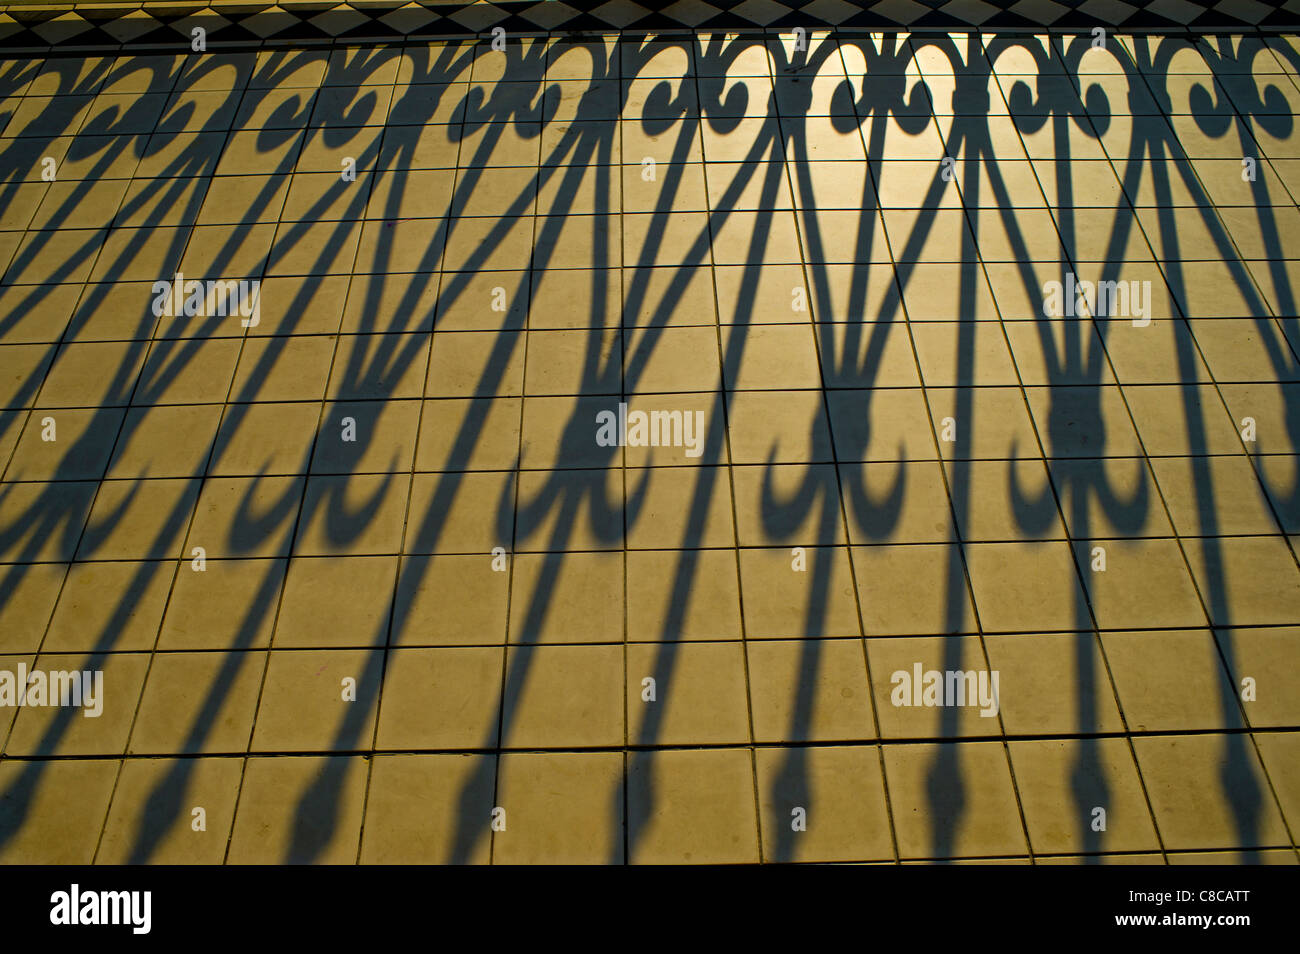 Shadows of the ornate iron railings of a Victorian bandstand in early morning light - Stock Image